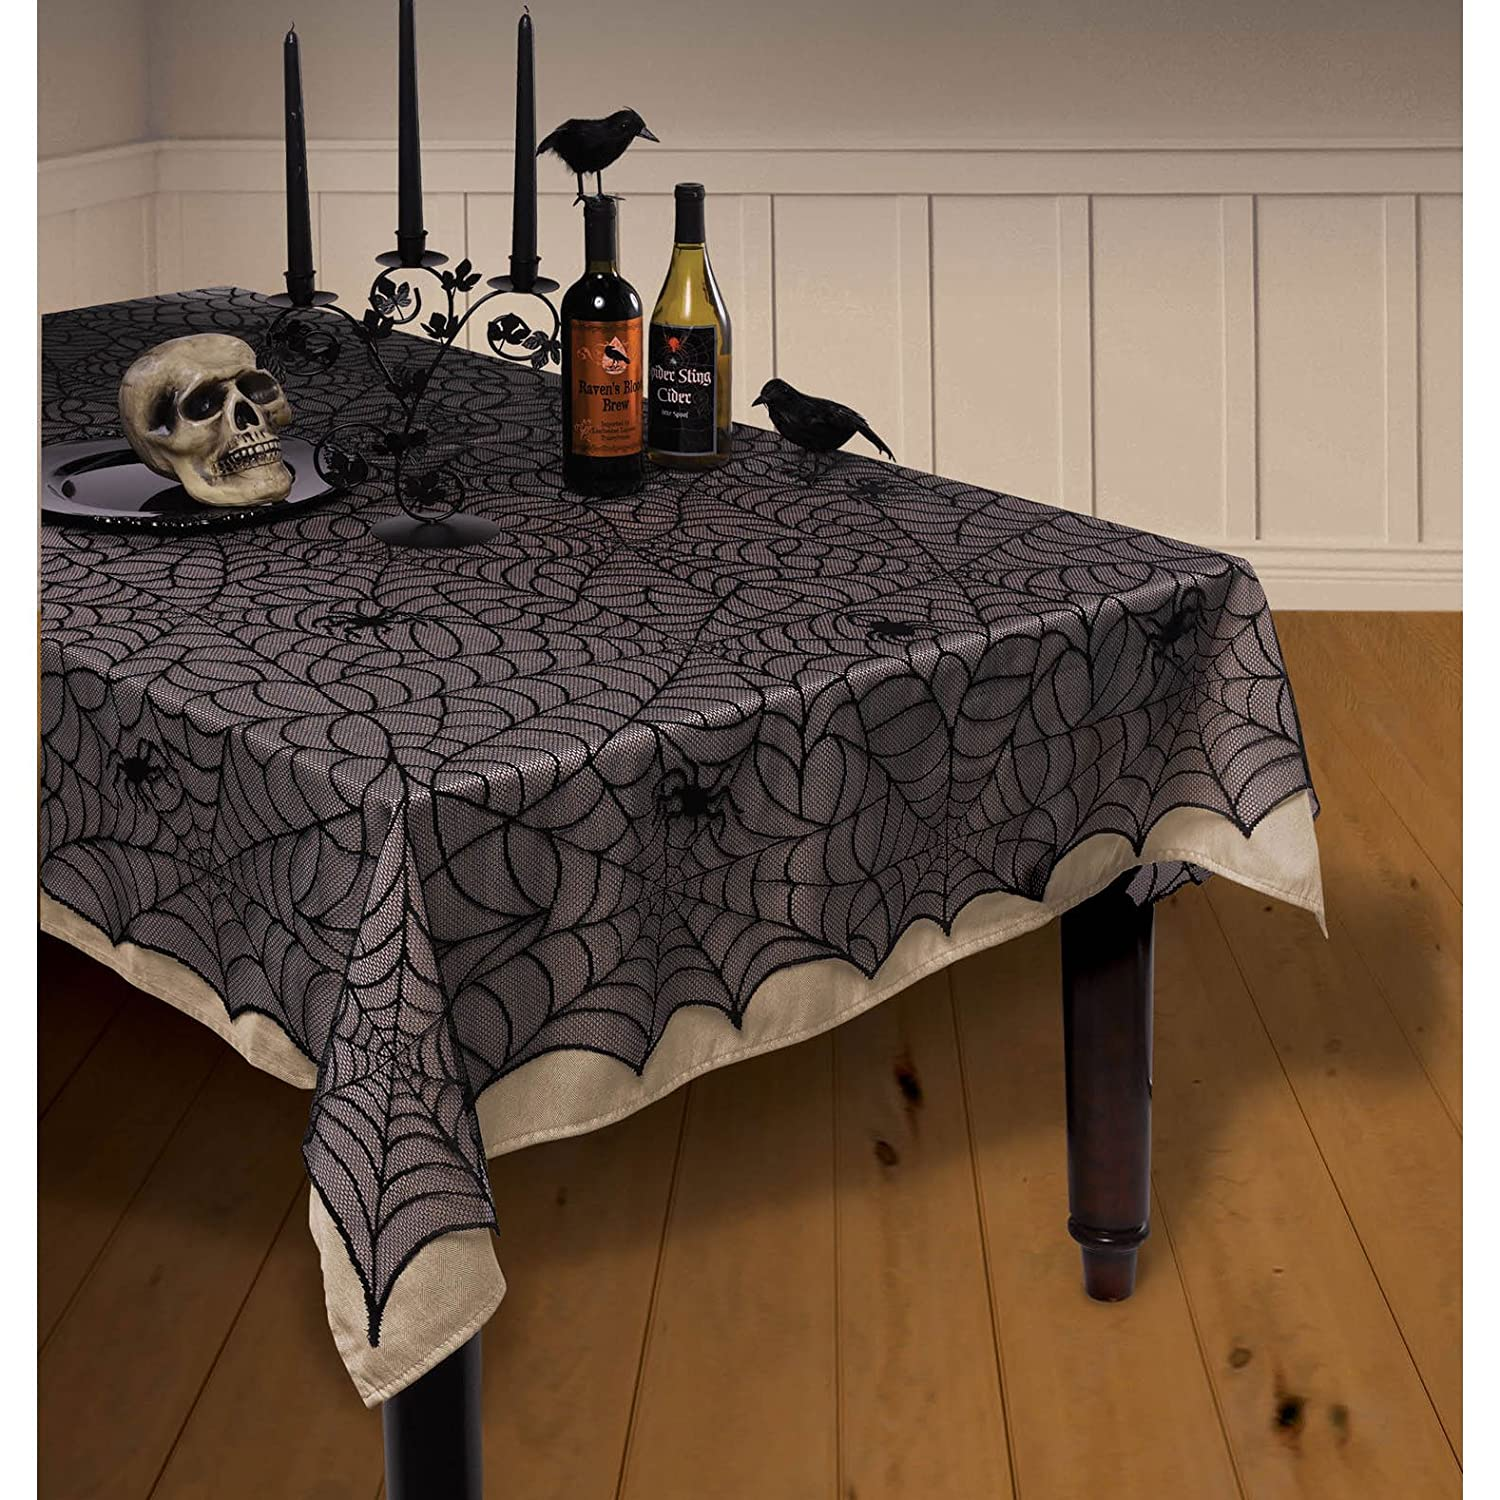 Halloween tablecloths - Halloween Tablecloths 3